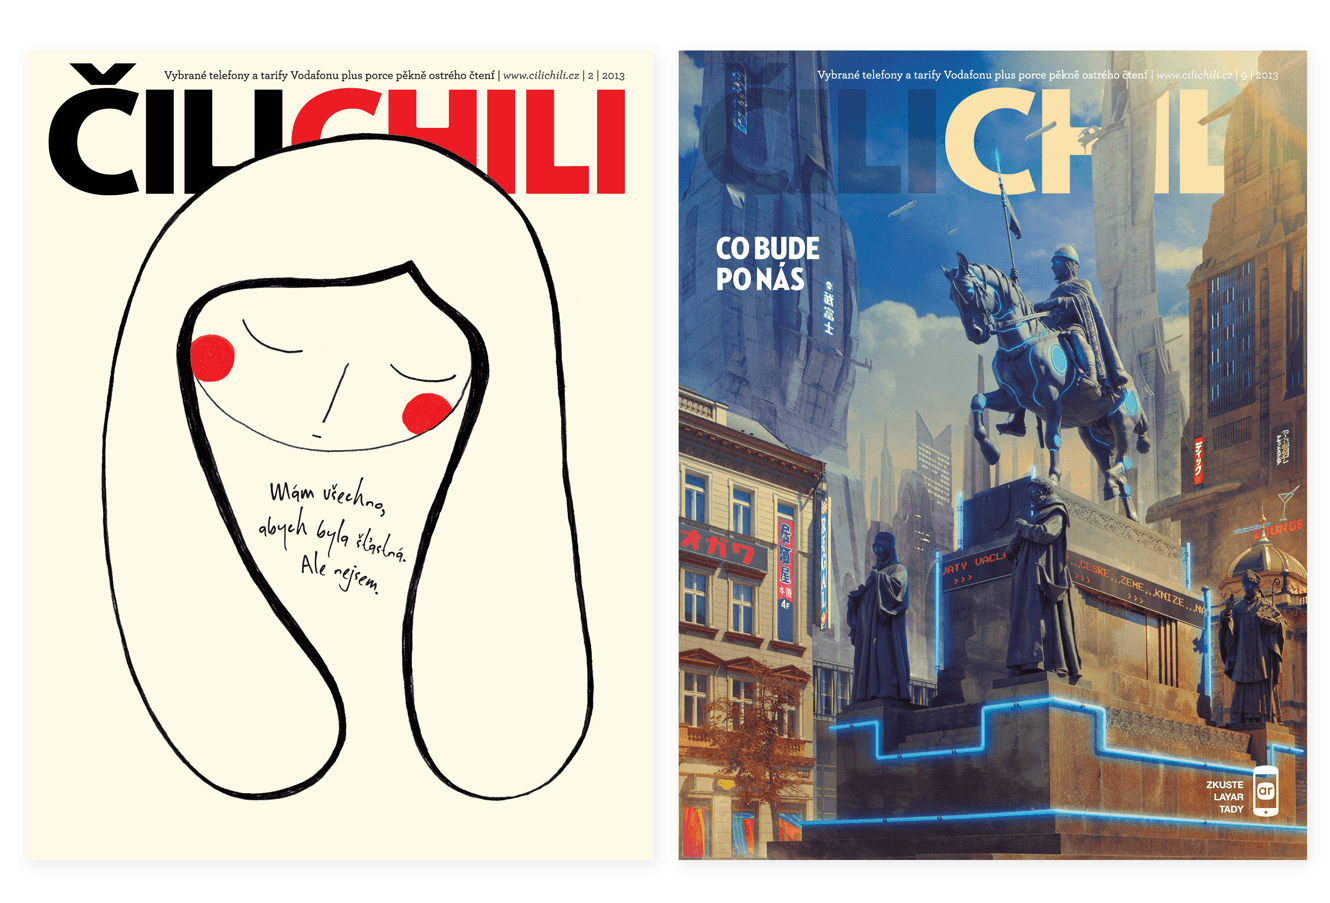 Cilichili Magazine Cover Designs By &&& Creative: Depression And Future Issues